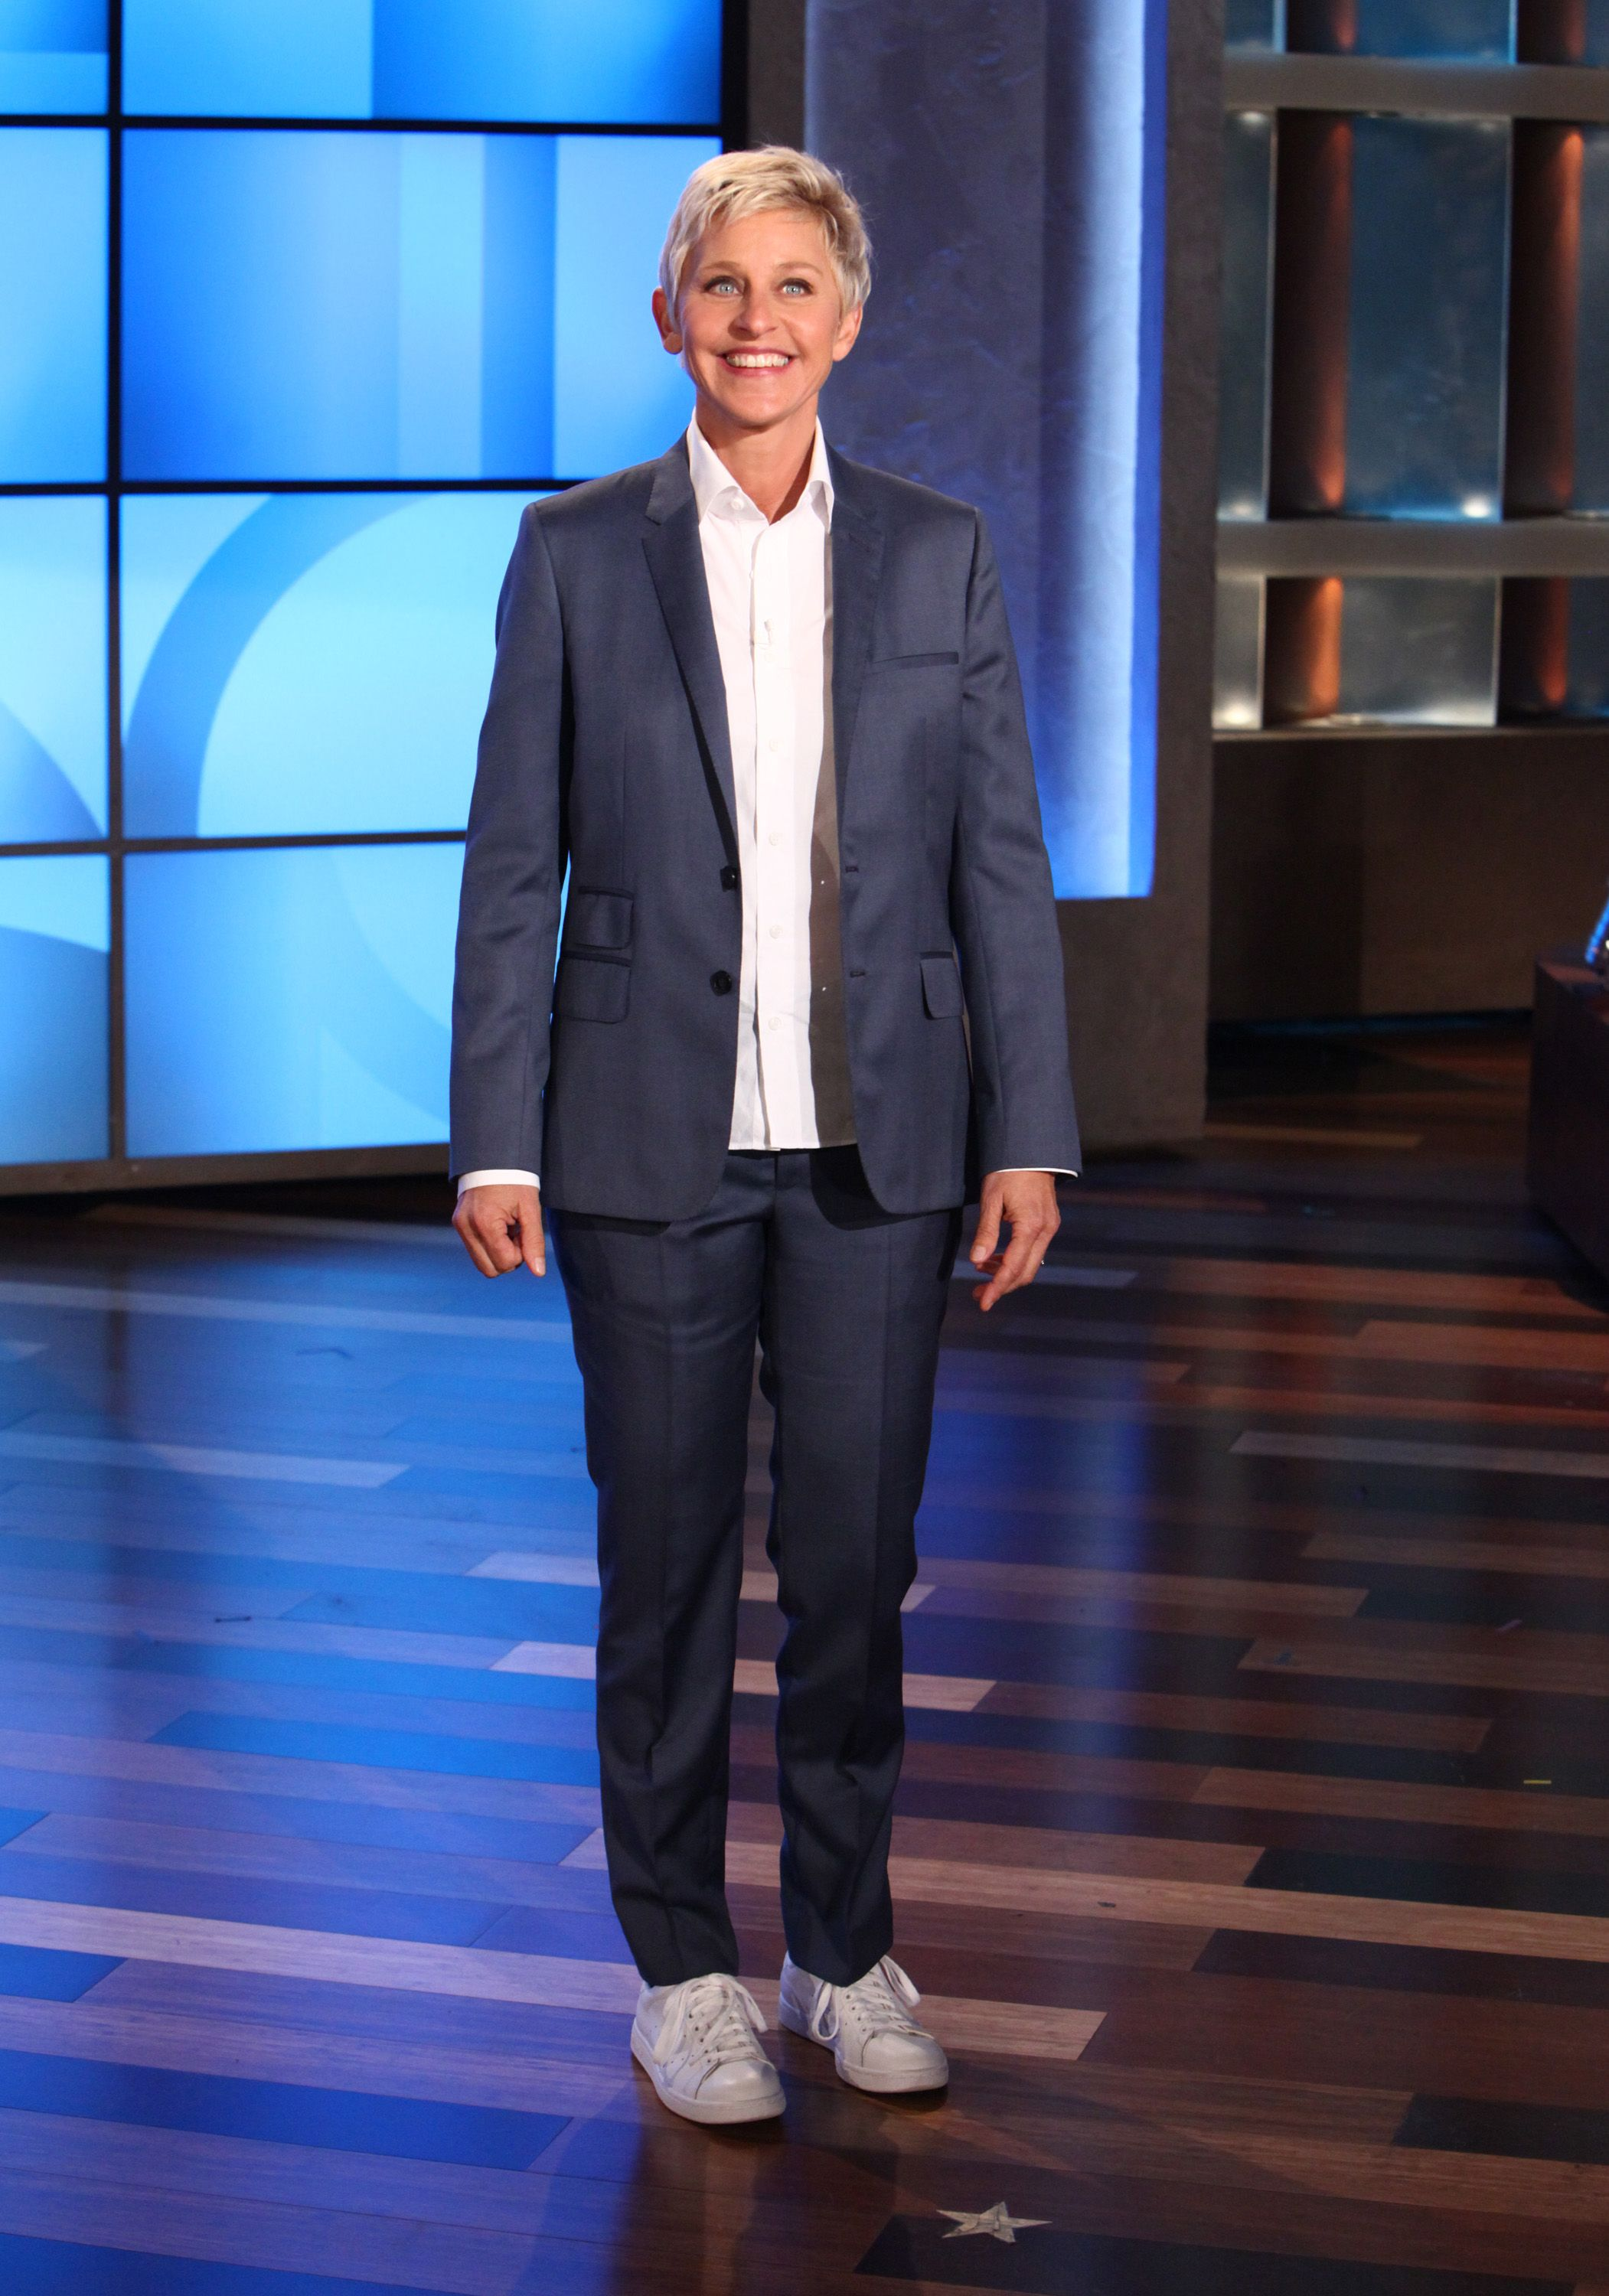 Ellen's Look of the Day: Blue suit, crisp white shirt, Stan Smith Adidas shoes, Falke socks.